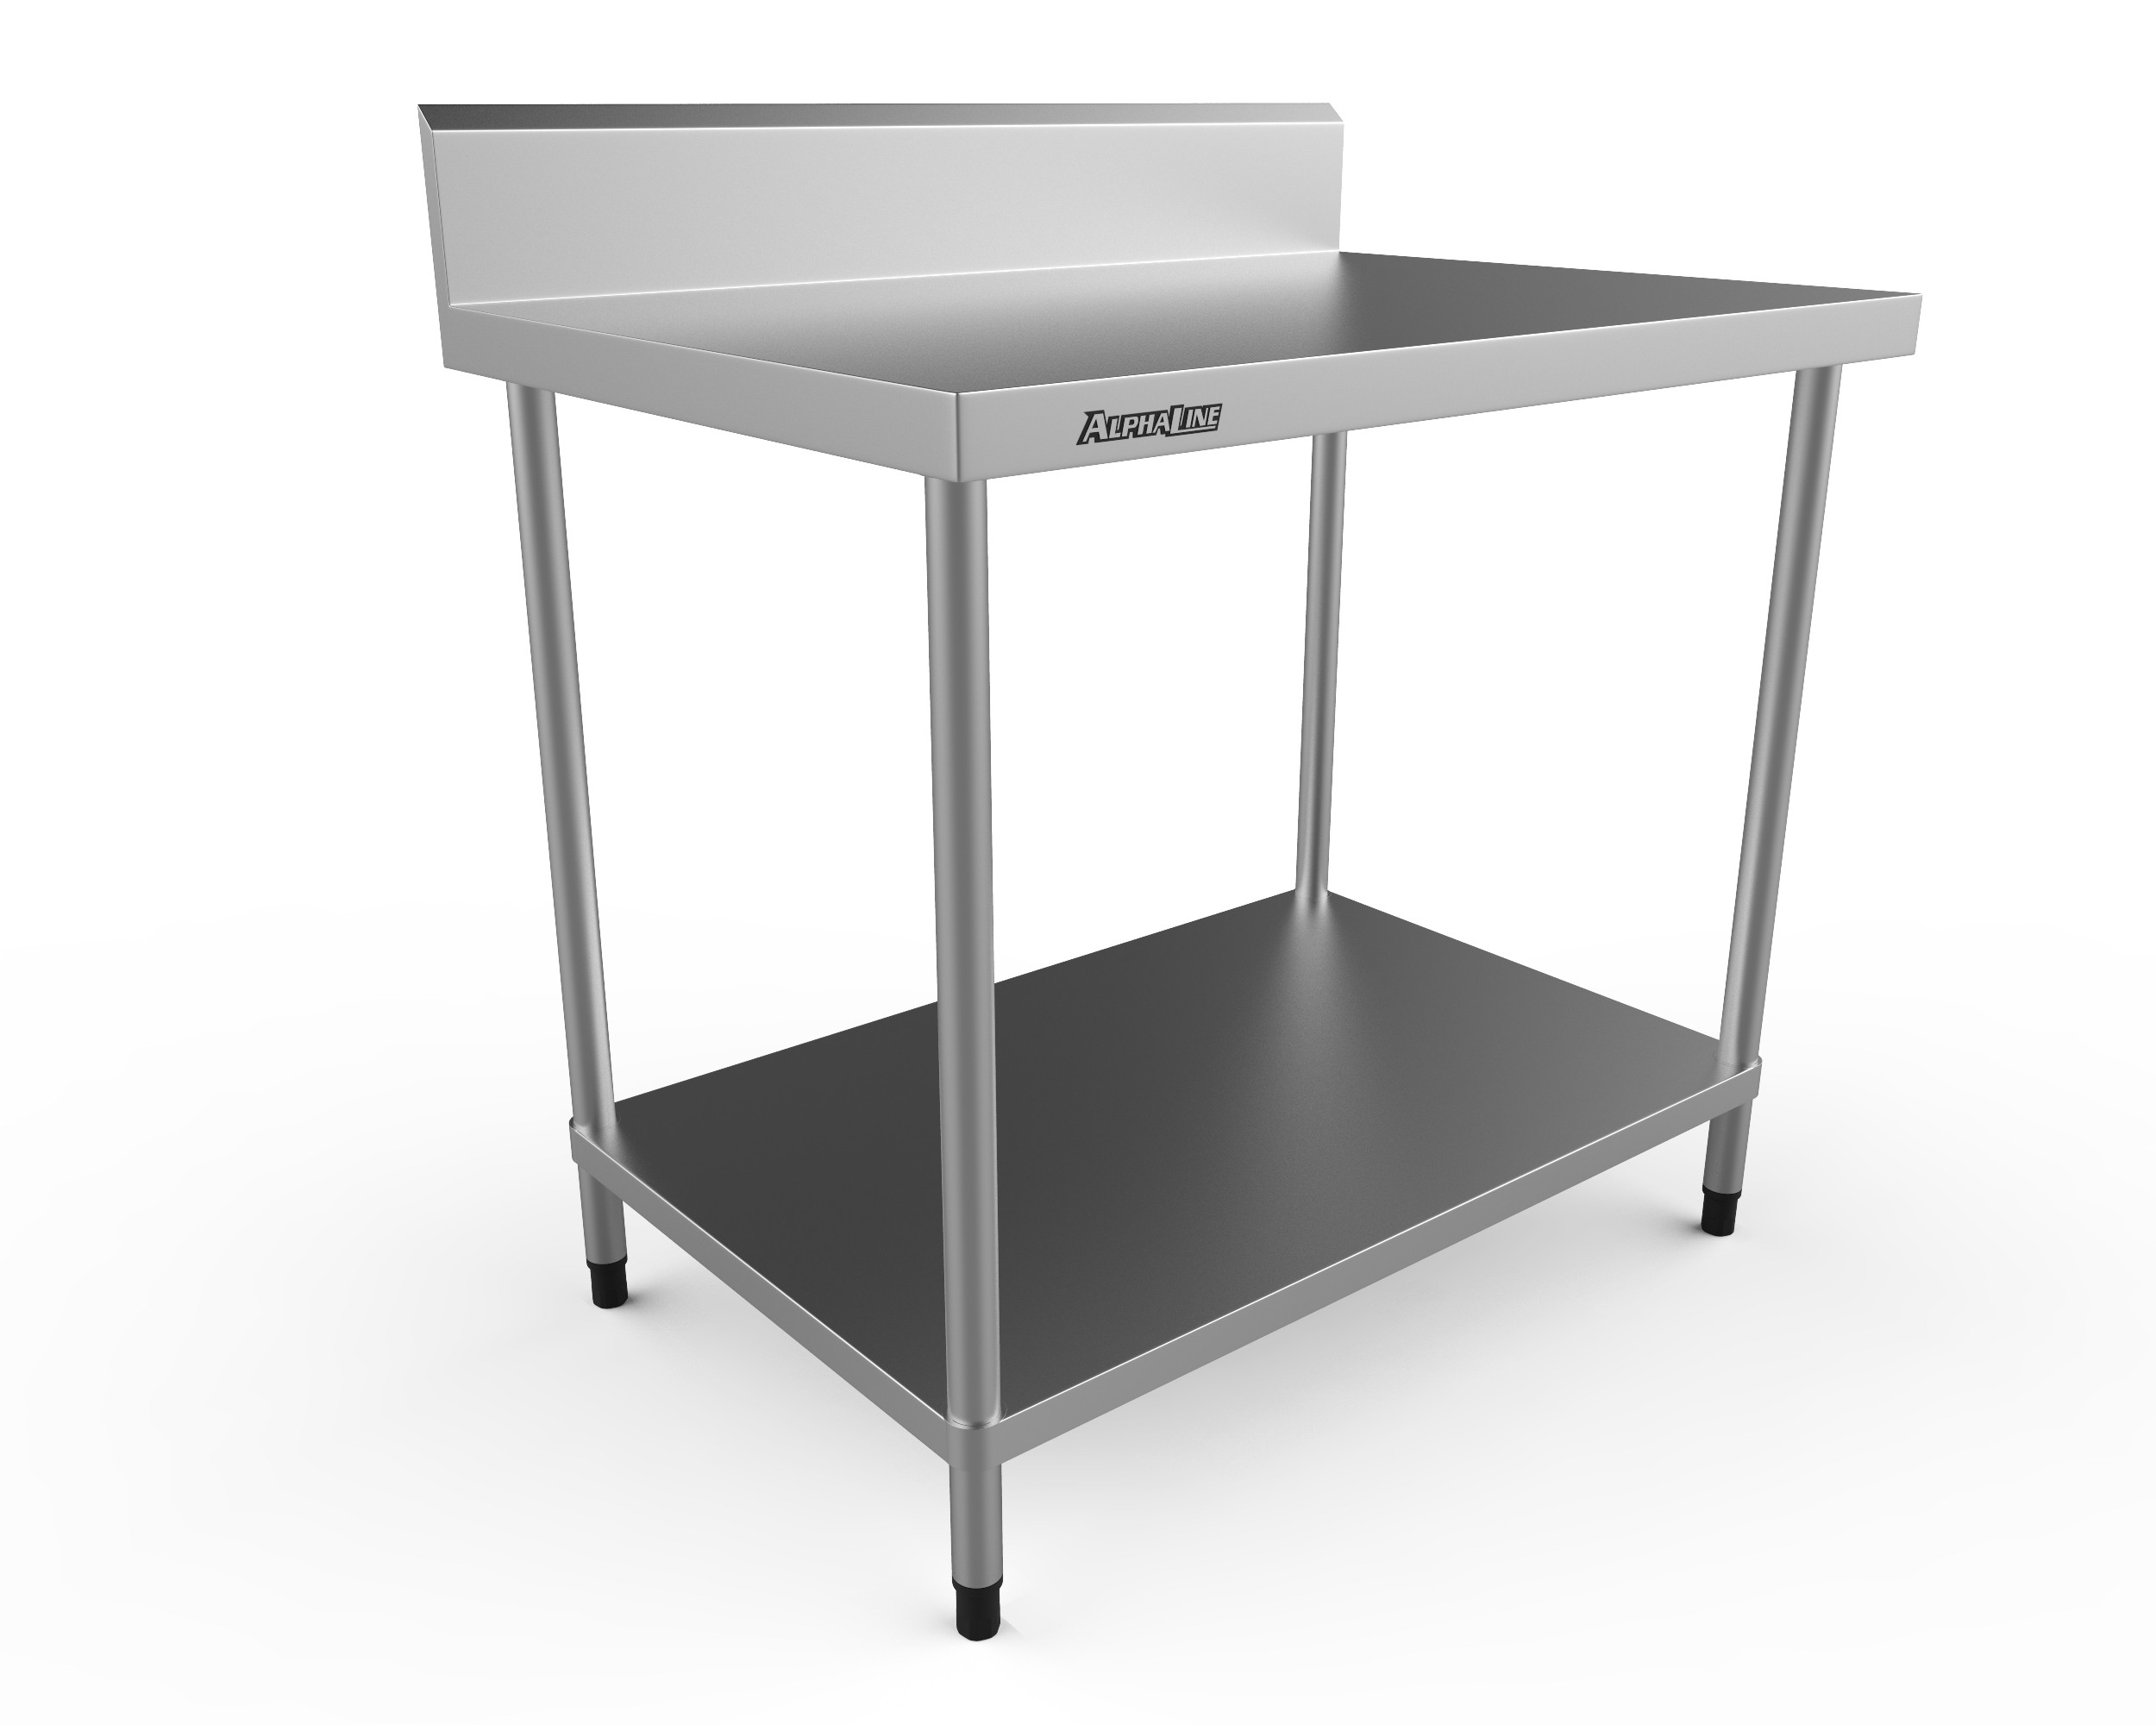 Stainless Steel Bench with Splash Back - 1000 x 700 304 Grade - ALP-SB-70100